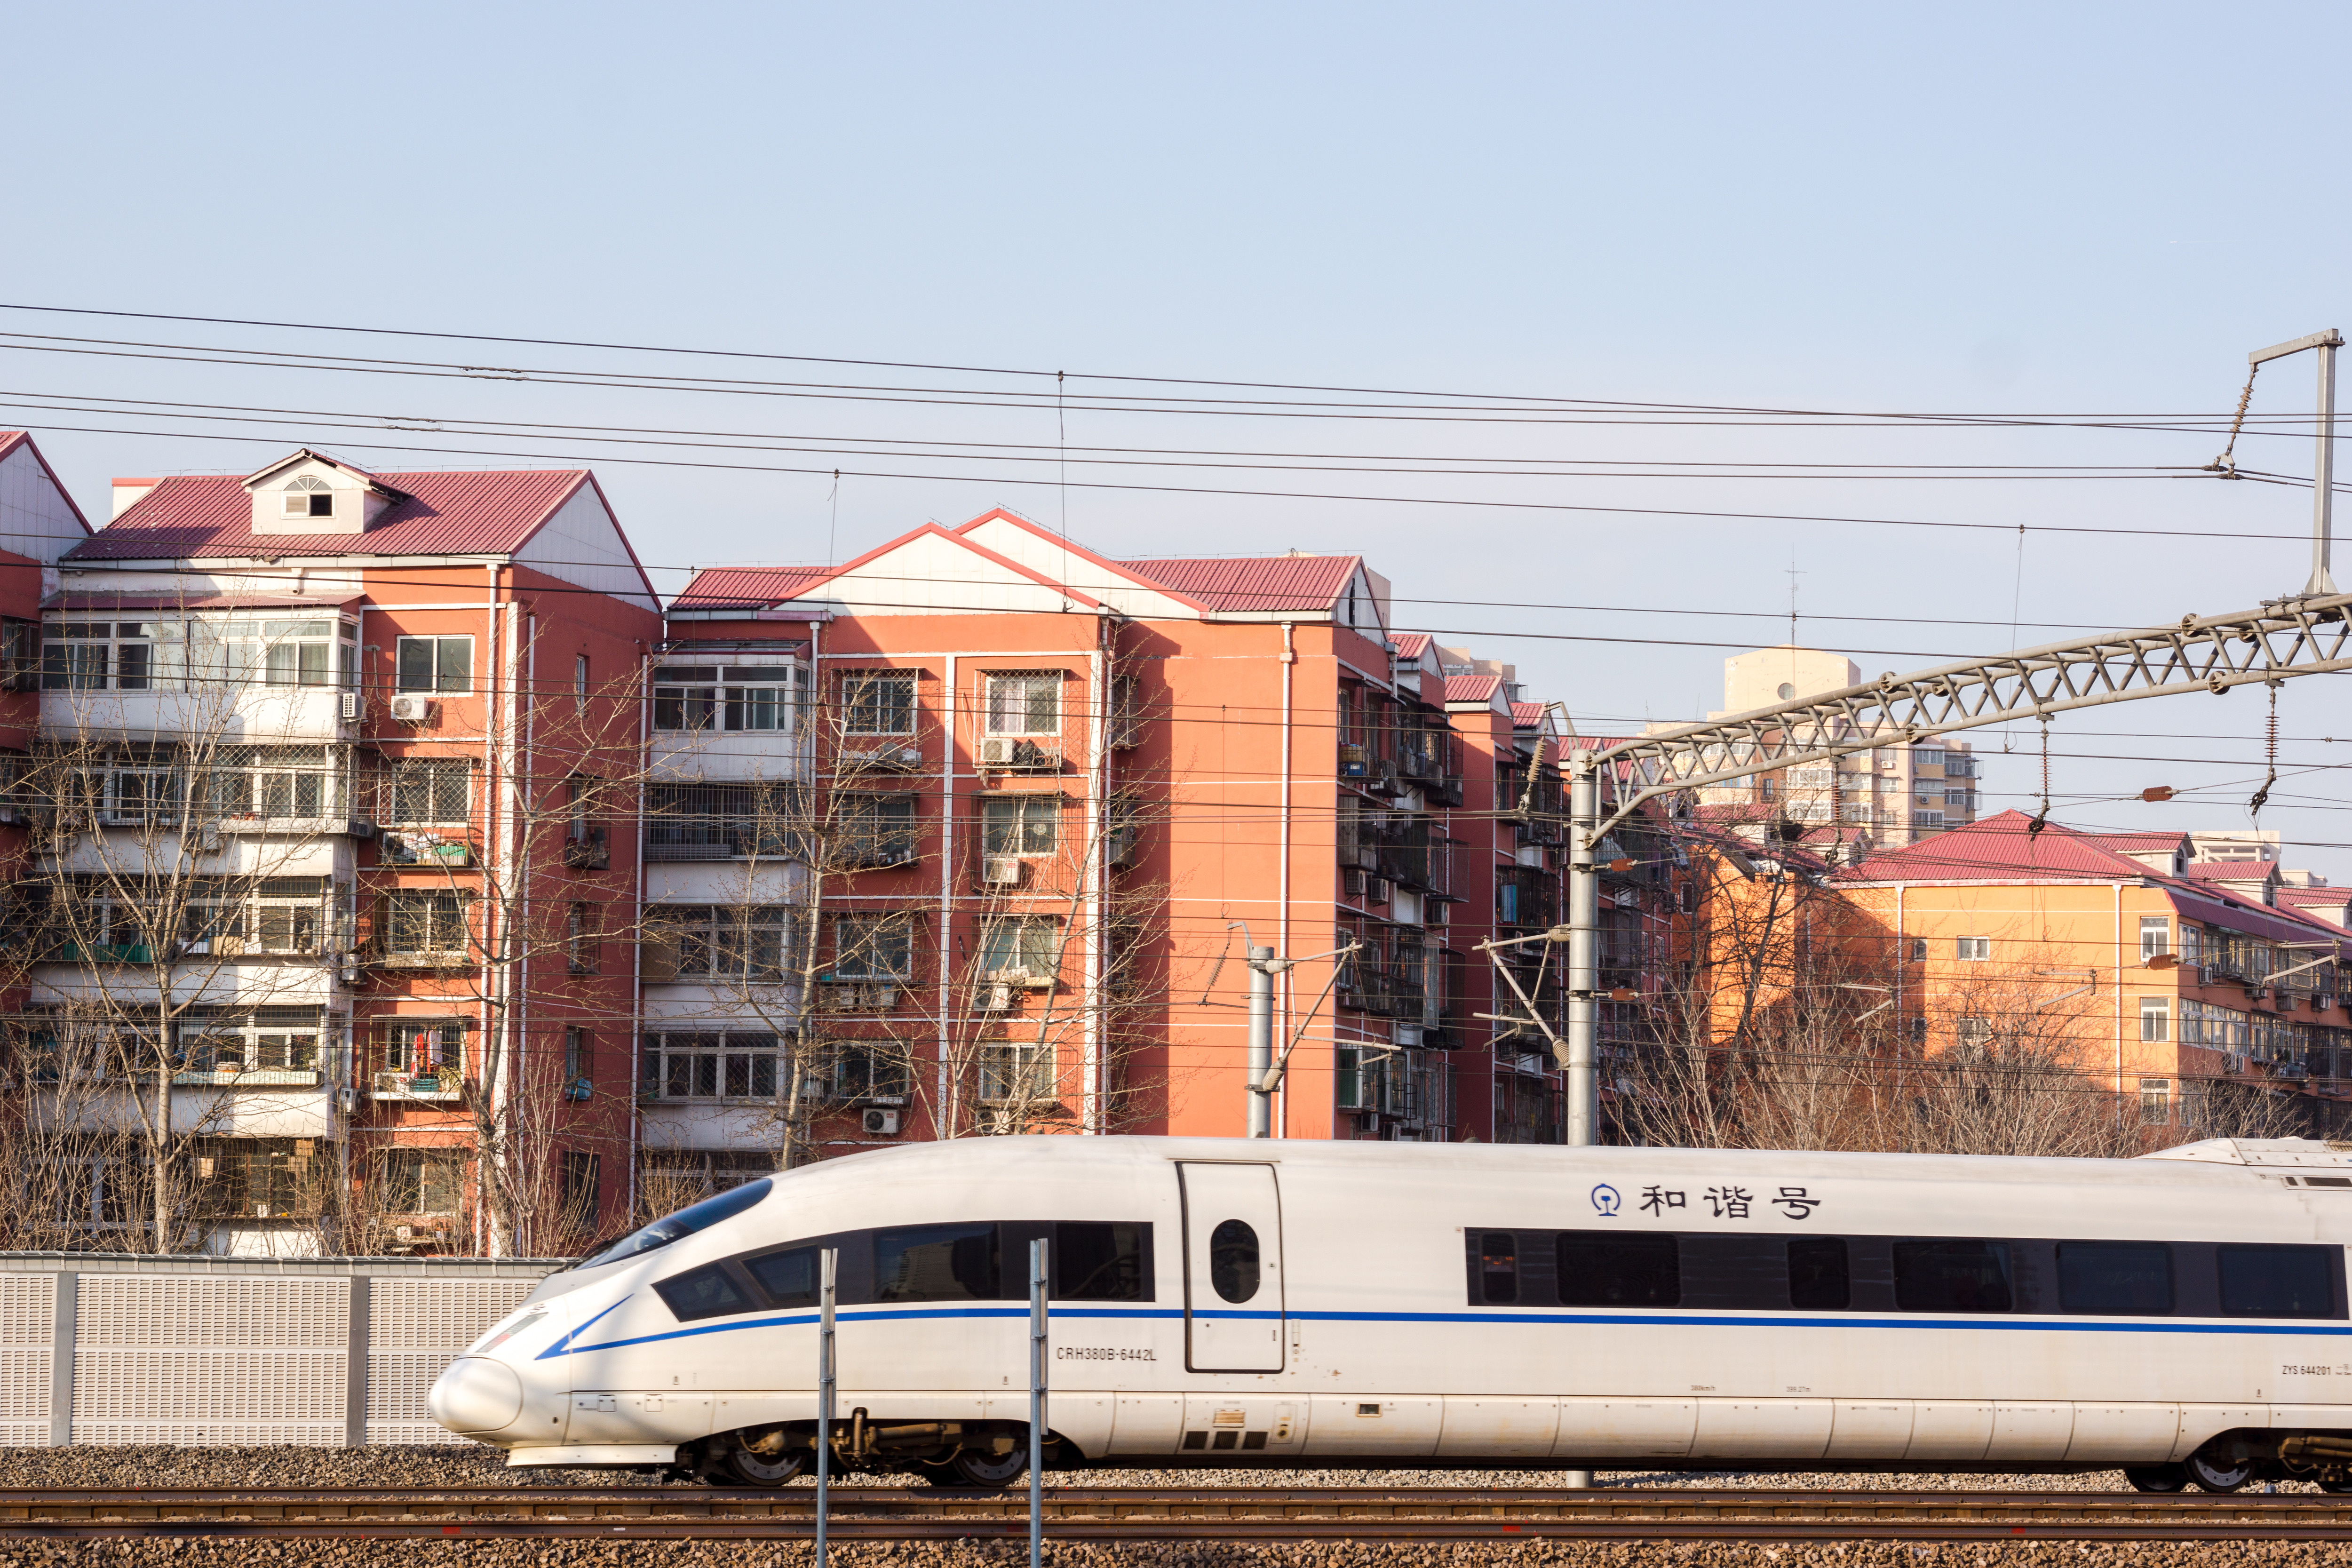 A high speed train is driving past a residential district.